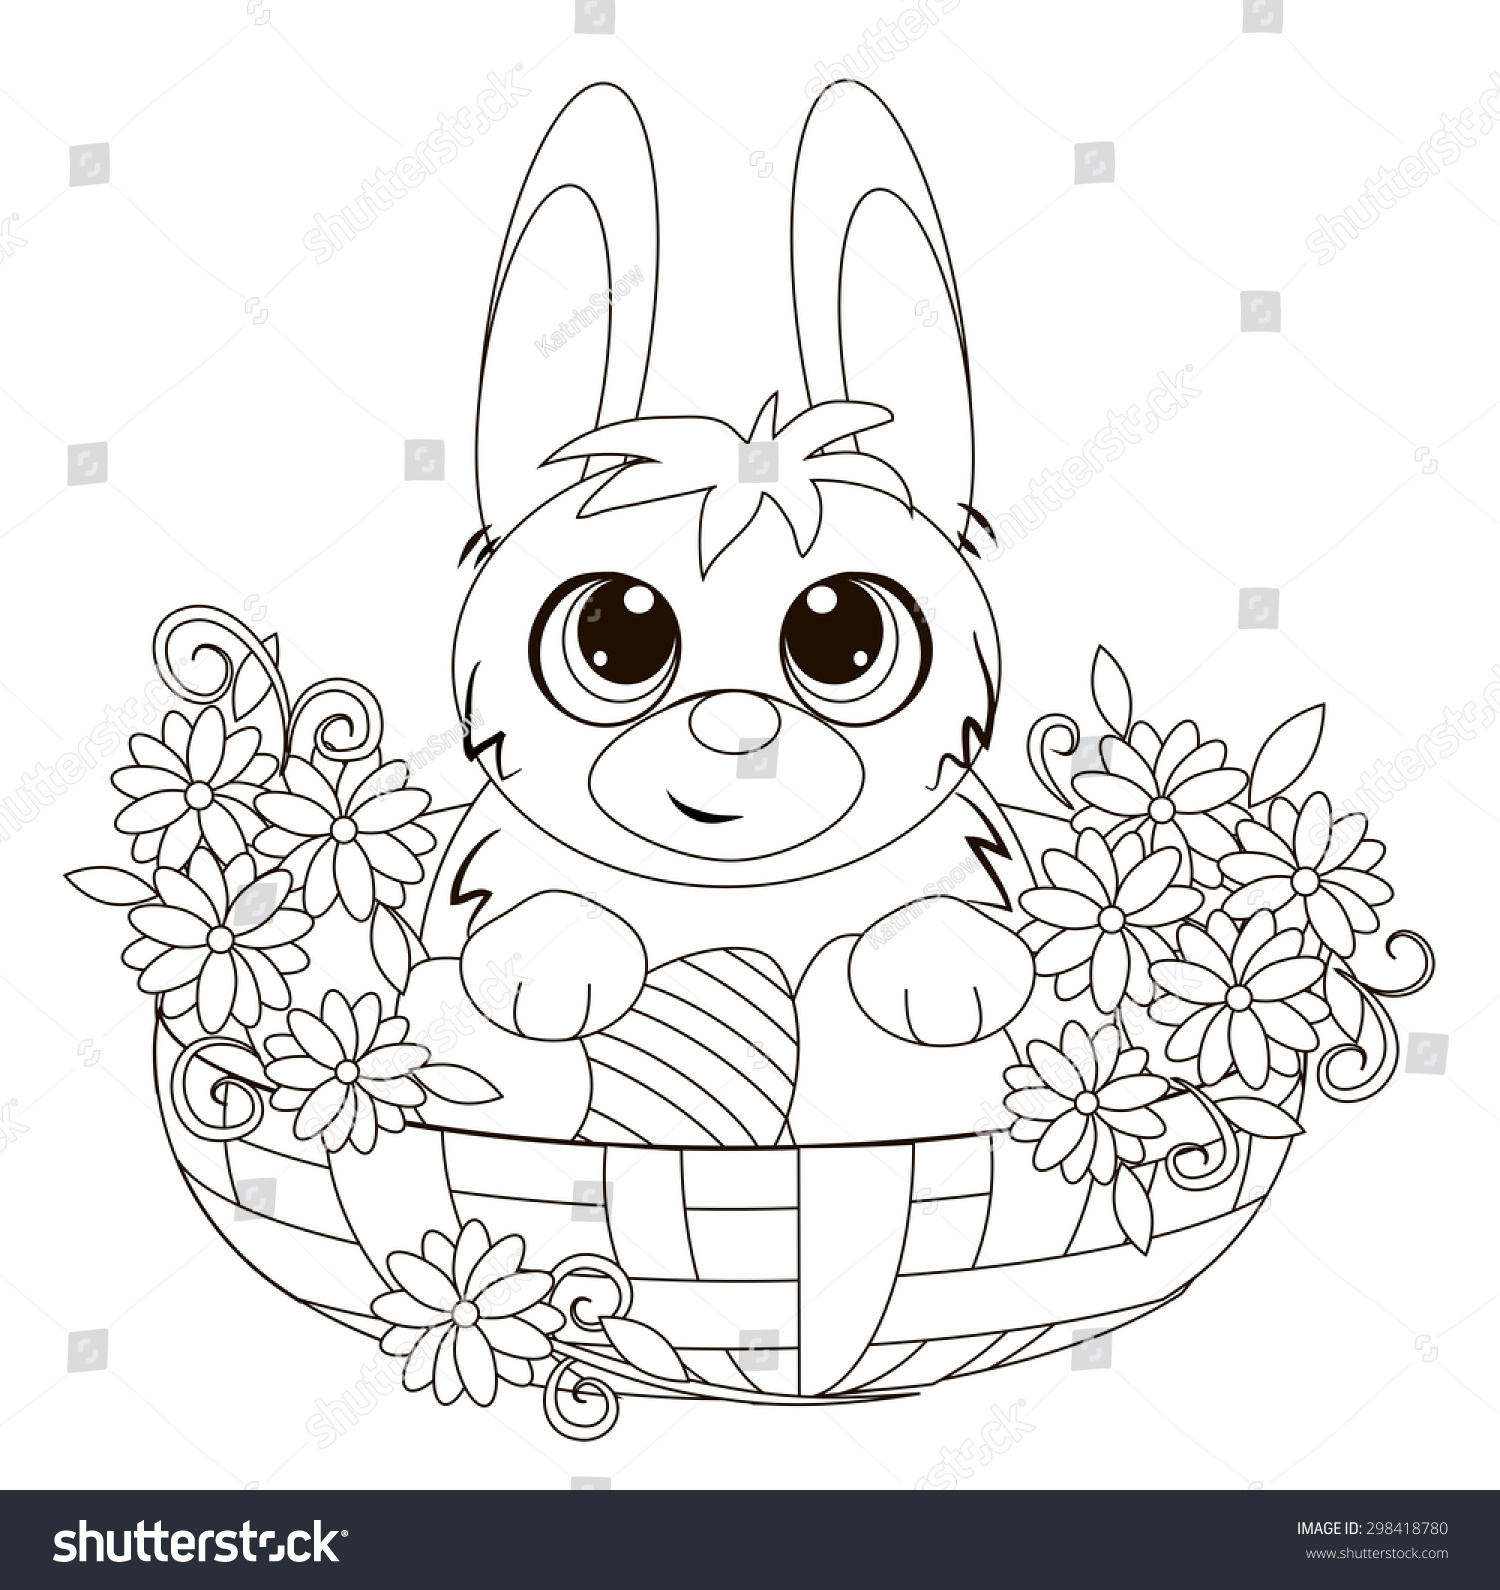 Easter Bunny Basket Coloring Book Stock Vector 298418780 - Shutterstock